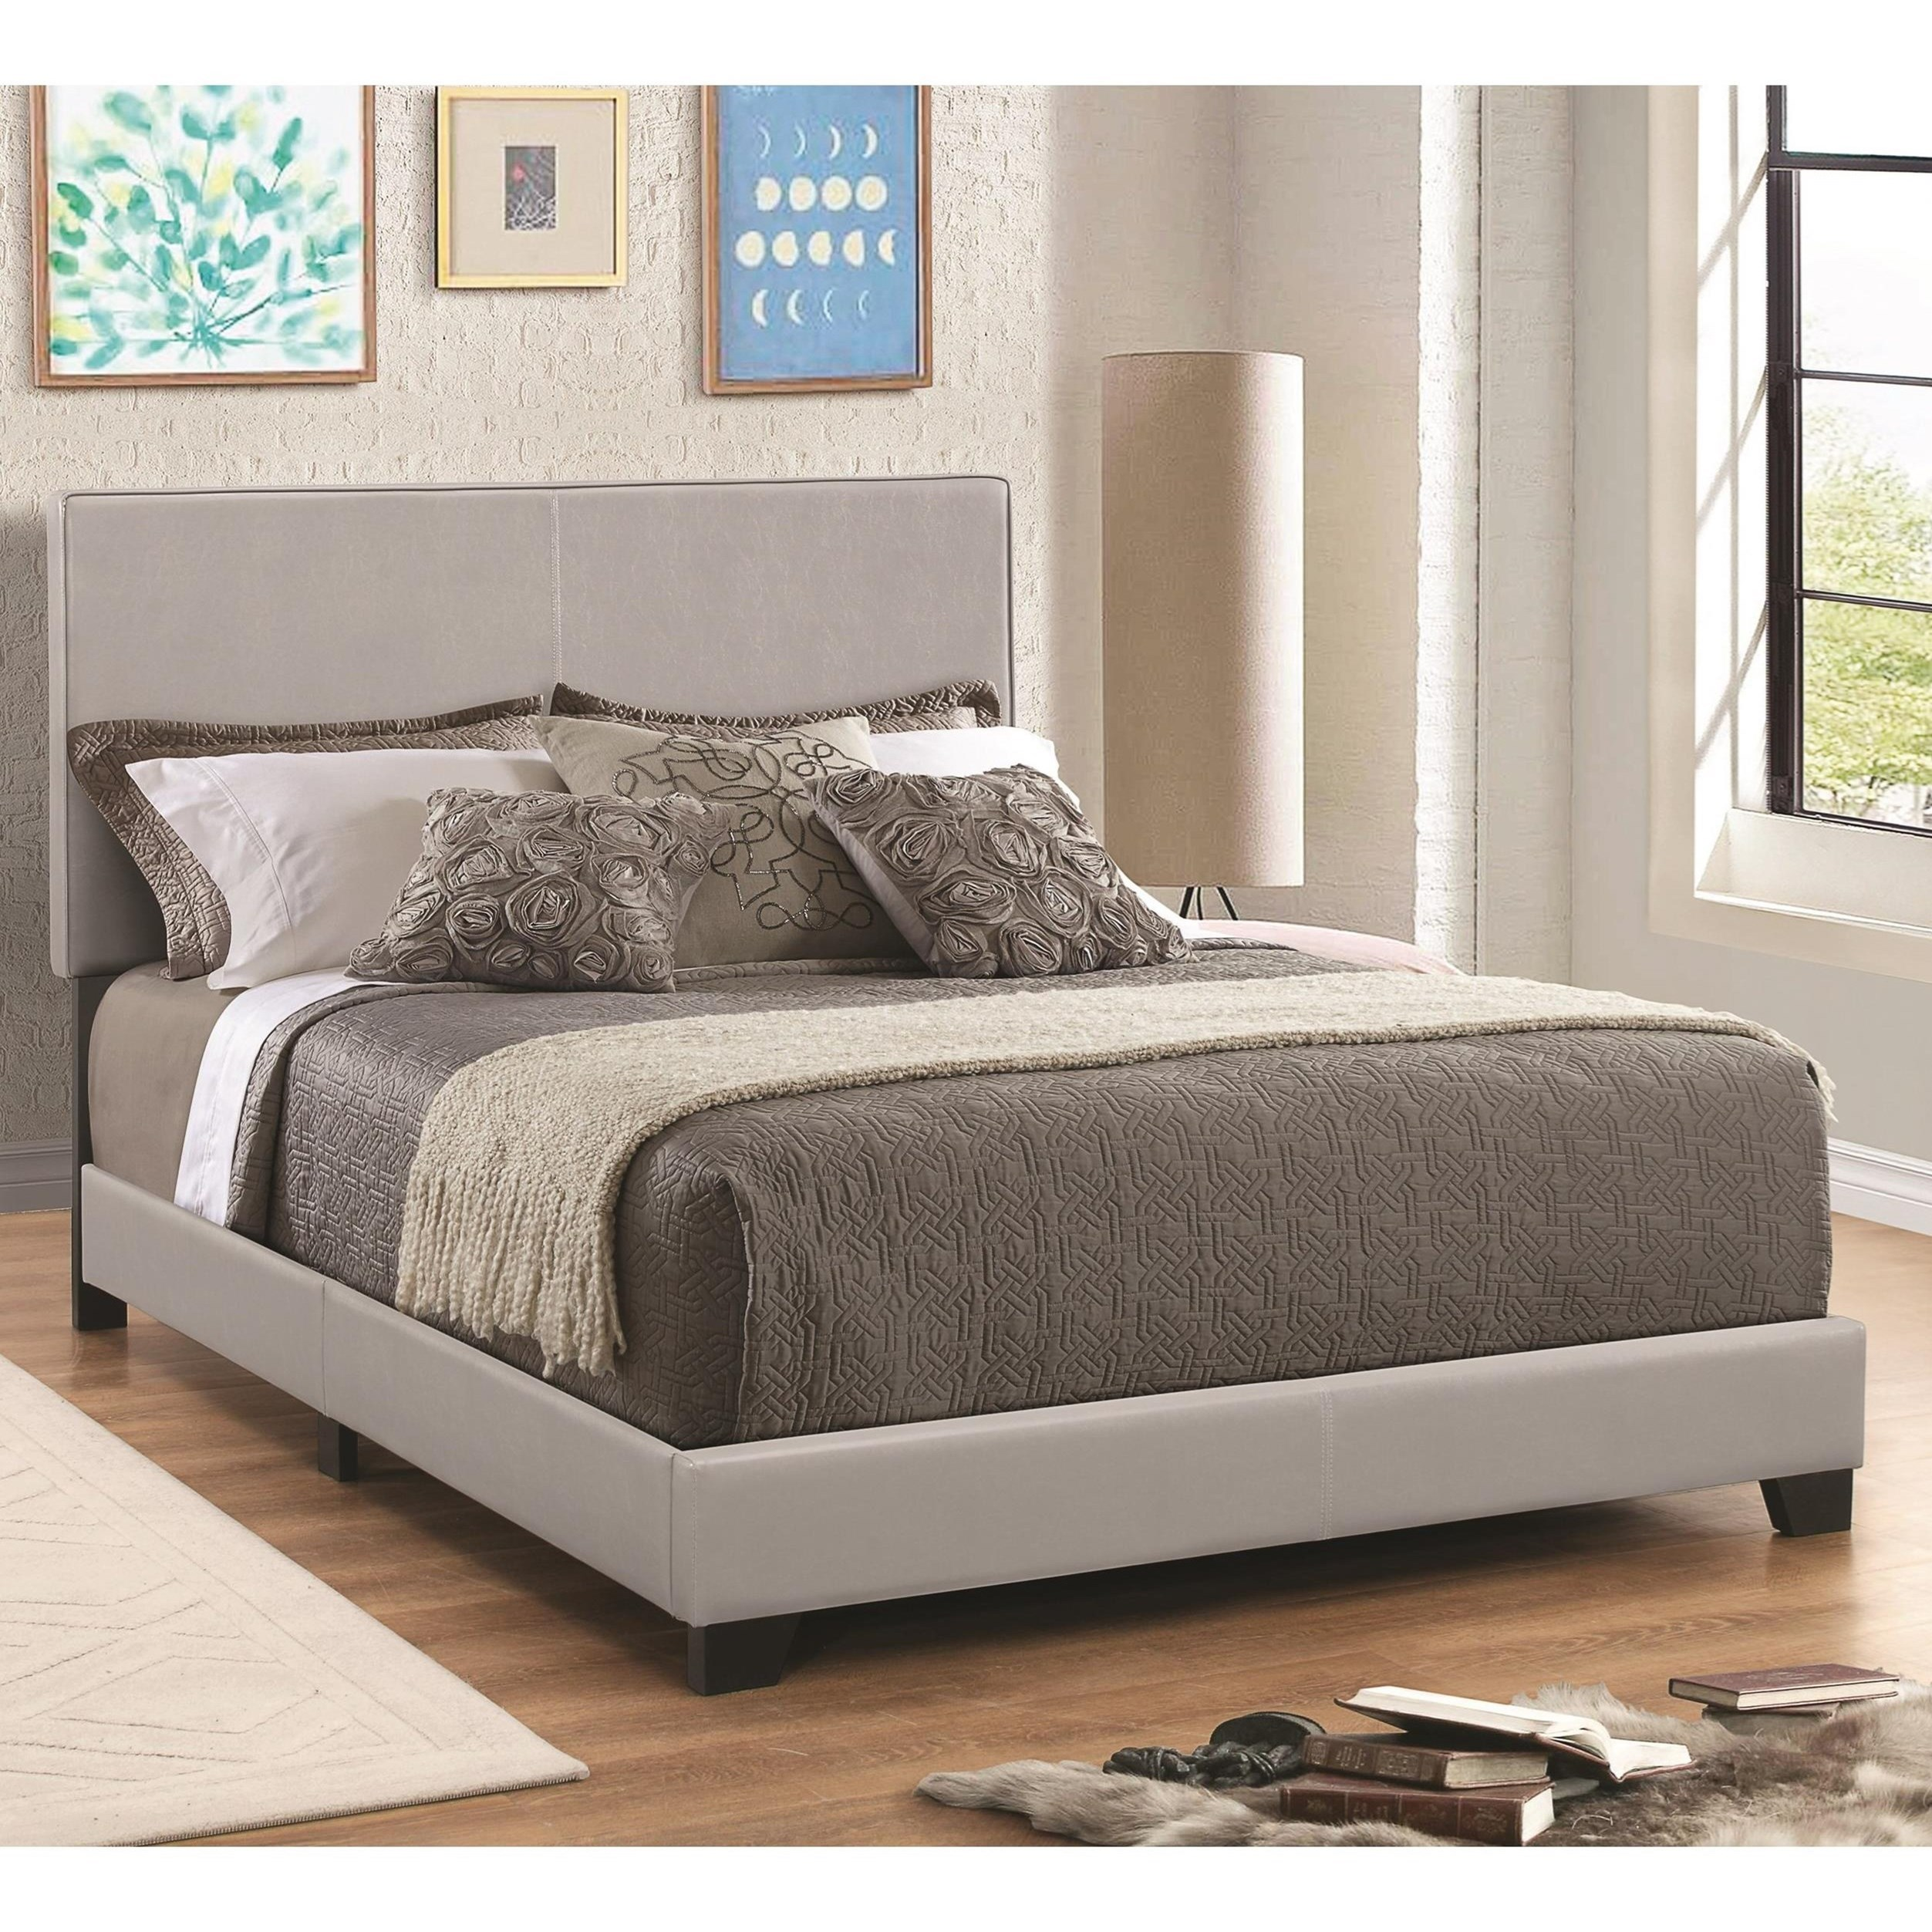 Dorian Grey King Bed by Coaster at Northeast Factory Direct